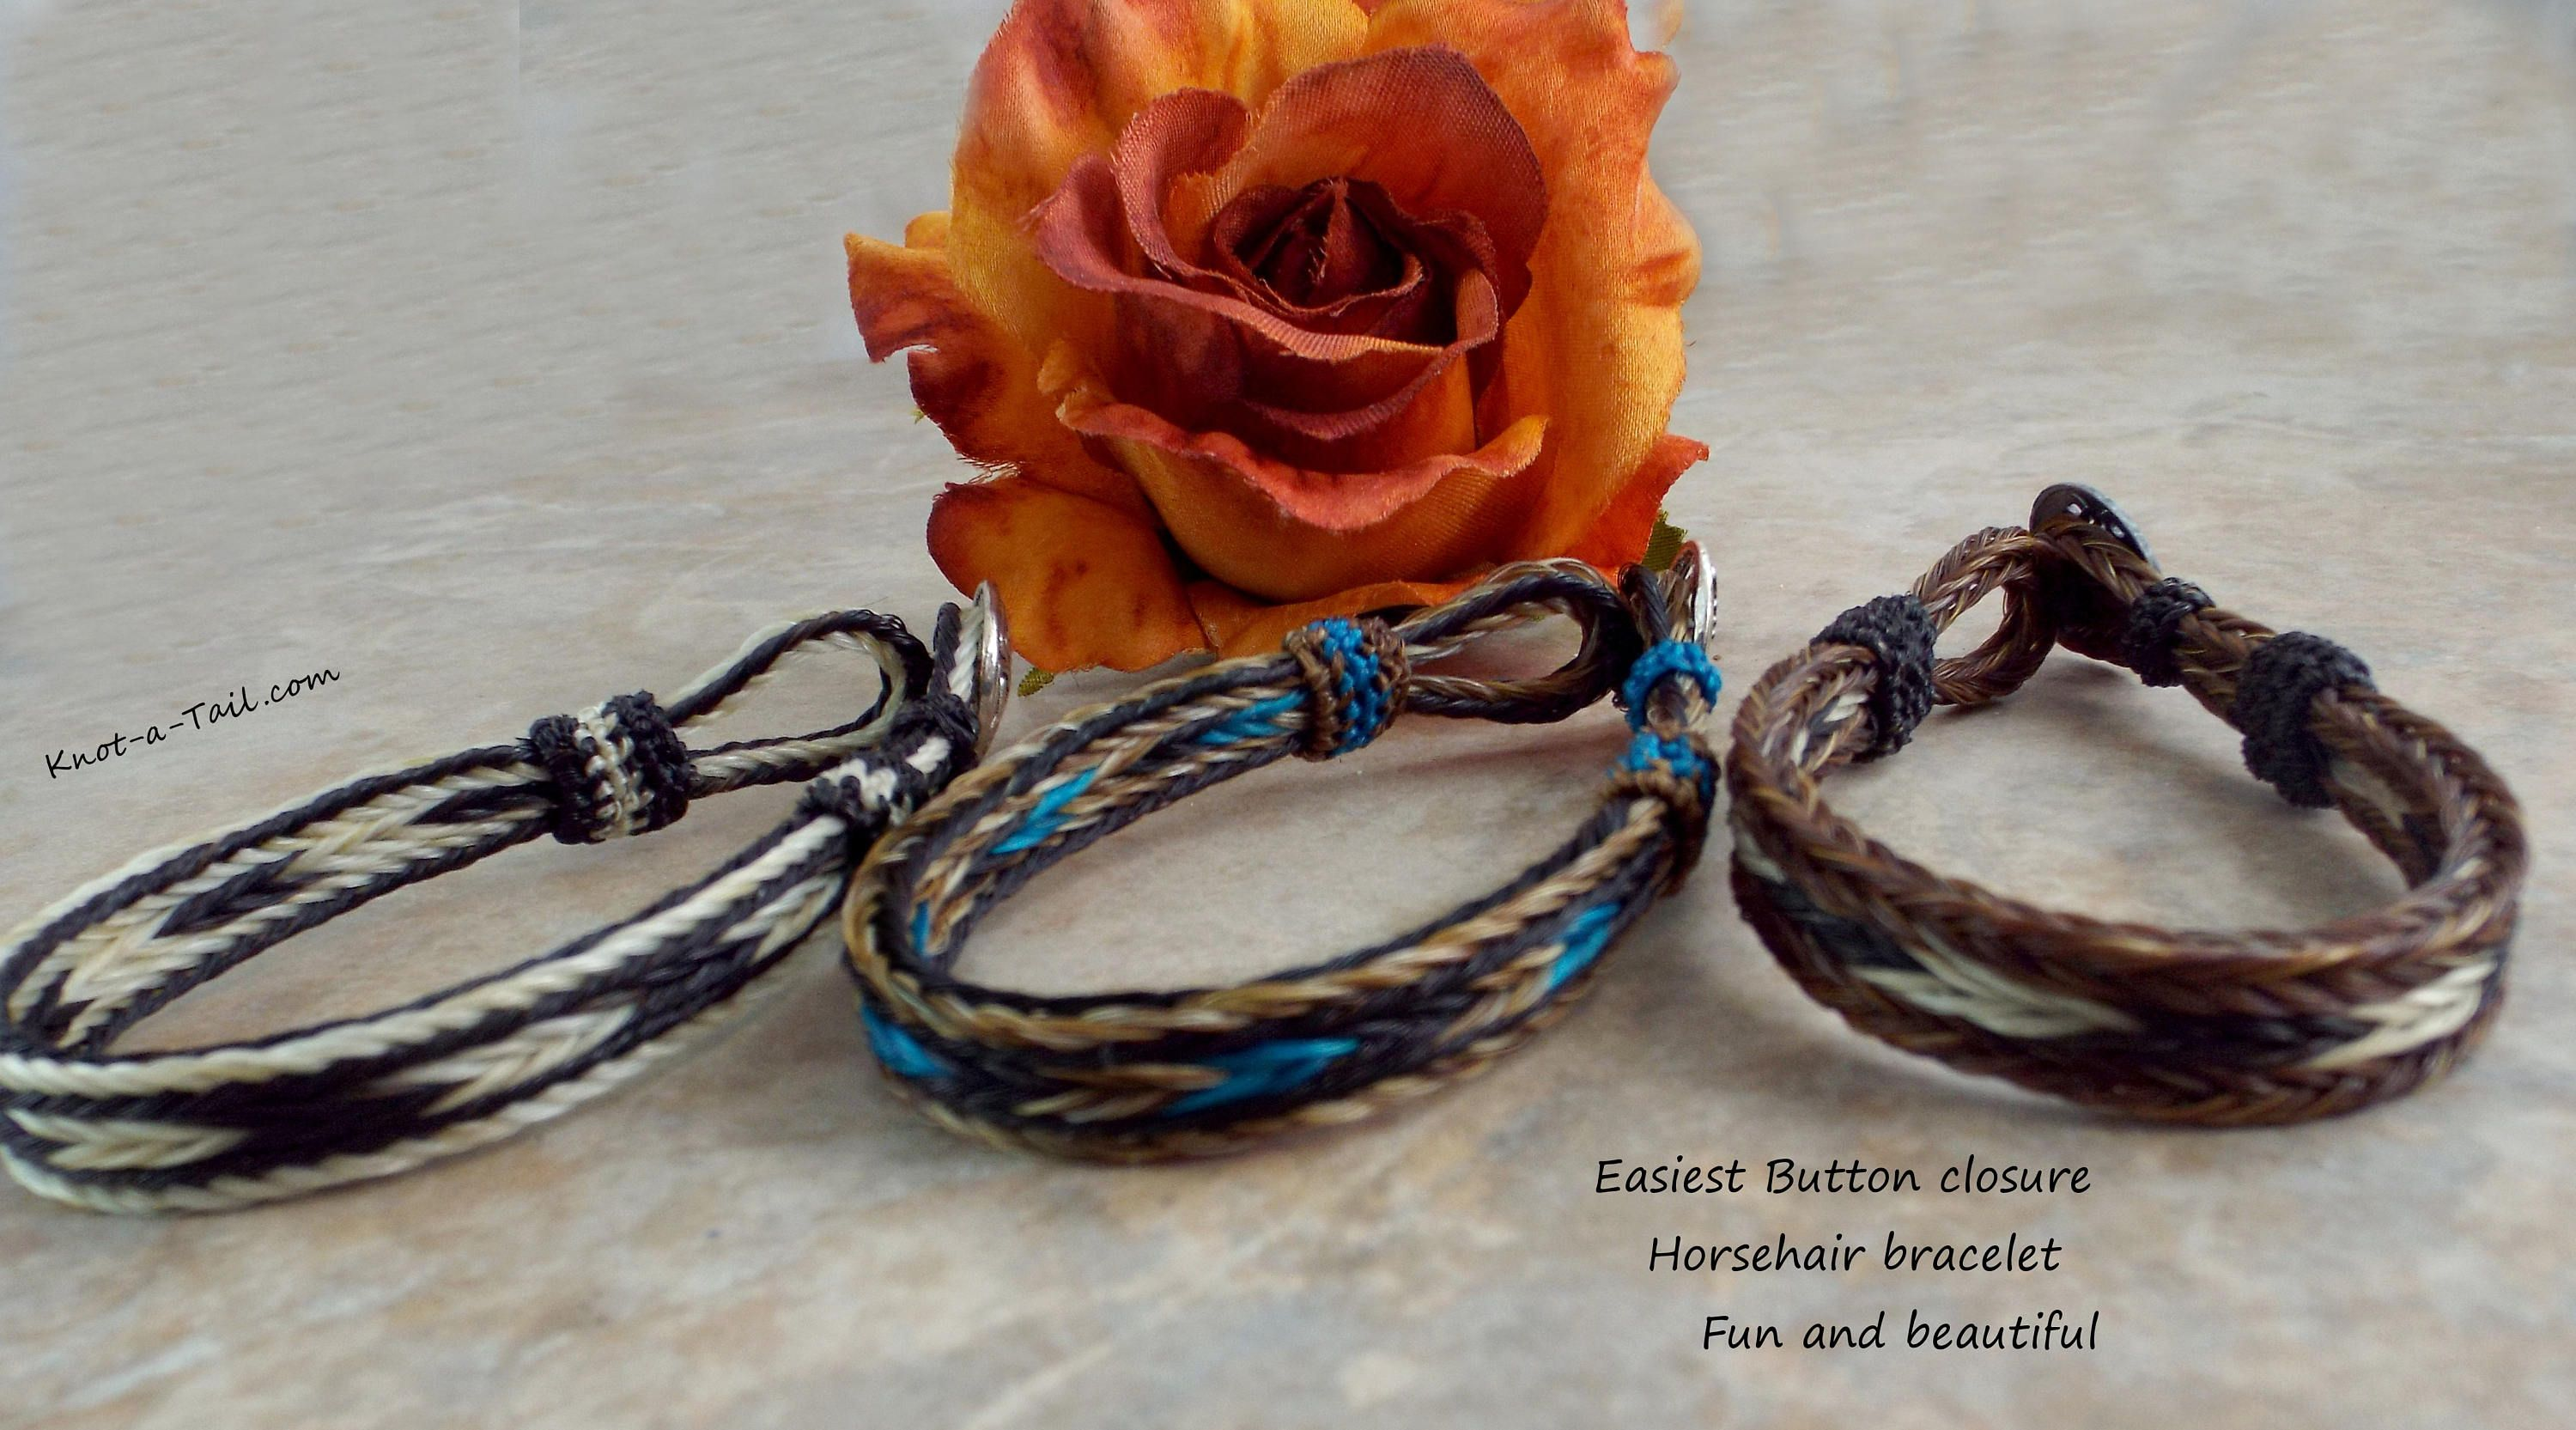 Horsehair bracelet easy loop closure handbraided horsehair